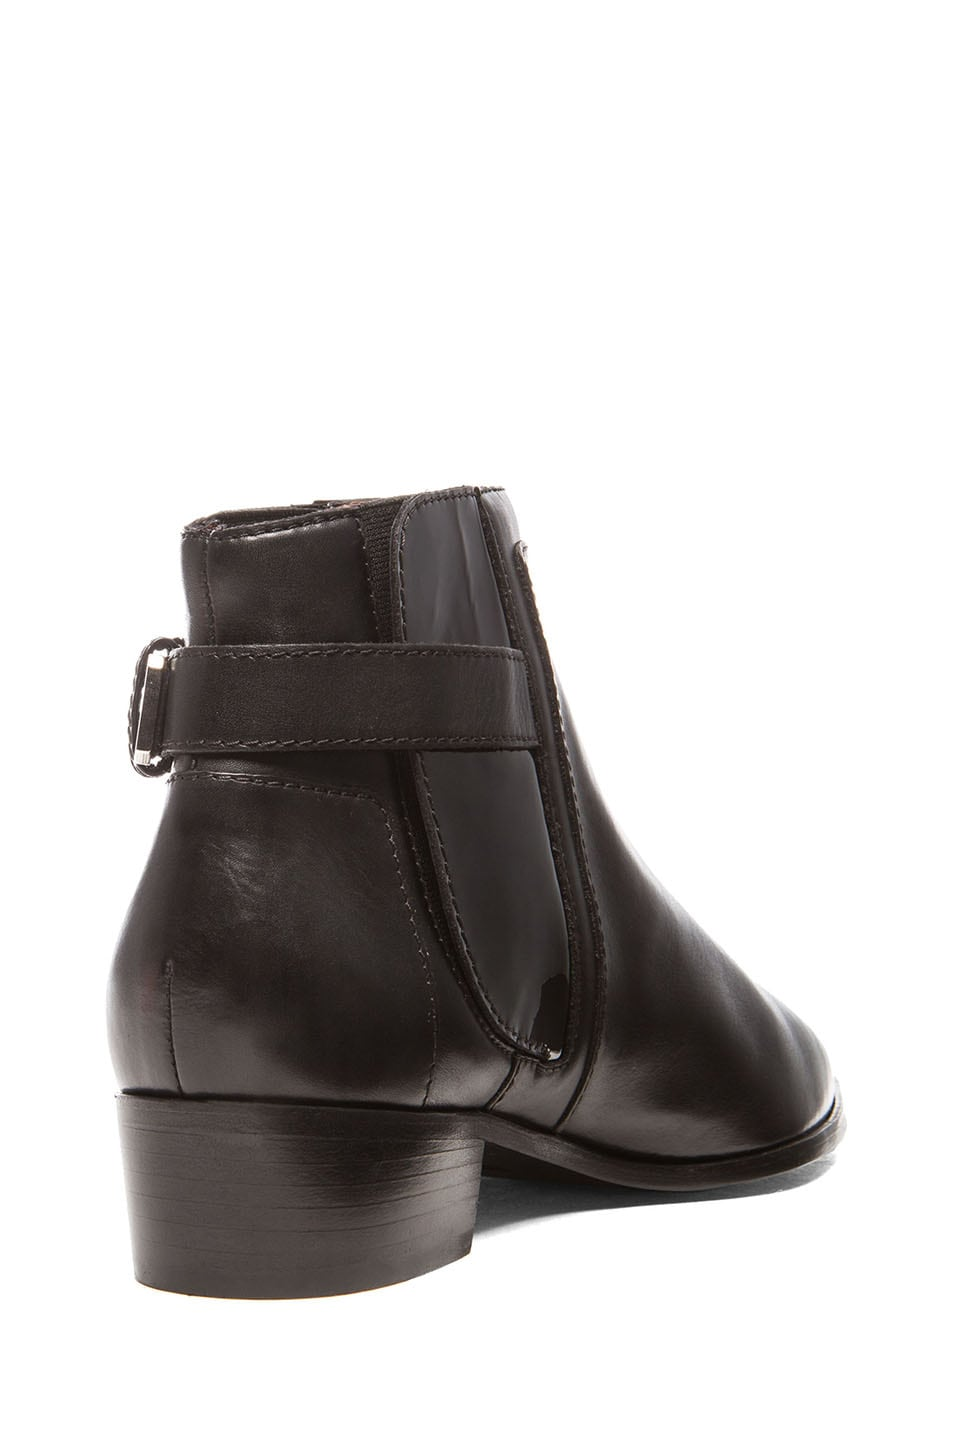 Image 3 of Laurence Dacade Ed Calfskin Leather Booties in Black